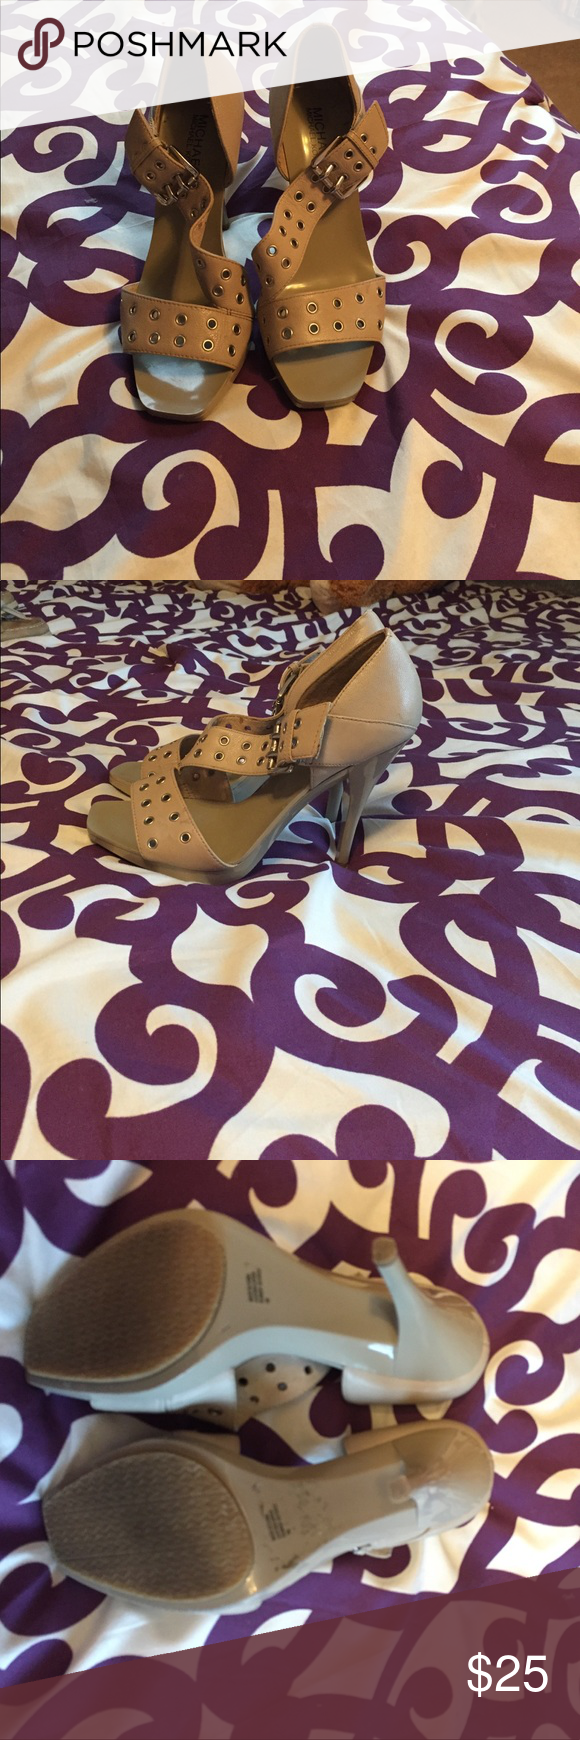 bb5e8fbeff Michael Kohl's tan heels Worn only once. Classy item with a little edge to  them